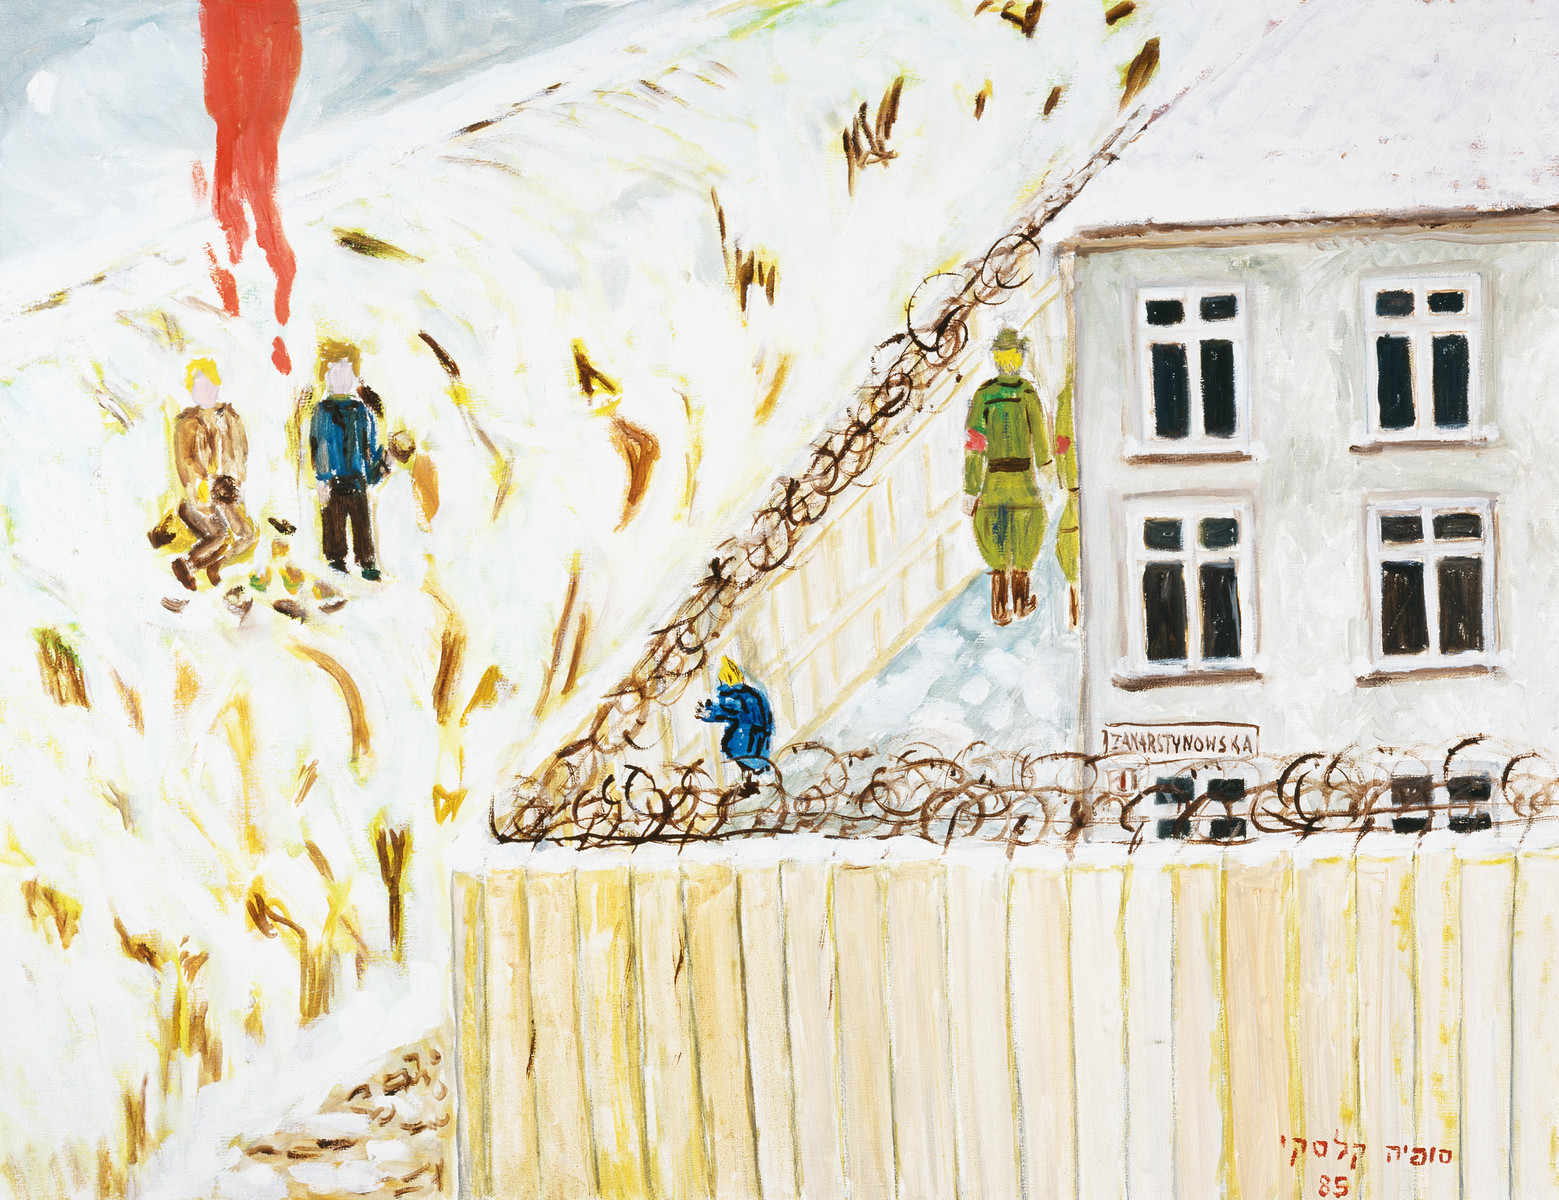 """A painting by artist Sophia Kalski entitled """"Escape from Lwow ghetto, end of March 1943. Zamarstynowska #1.""""    The artist writes about the image, """"The Germans are in the street and I'm running. I was told that through the fourth post in the fence I will be able to leave. I reached the fence, I counted four posts. In the moment the German turned his back, I discovered the hole in the fence and with the speed of lightening, I passed through this hole to the other side. the Aryan side. One minute of fear, that will bring life or death. Polish children discovered me and started to yell """"Jewess!"""" and throw stones at me. I managed to avoid them, to run away, and to cross the street."""""""